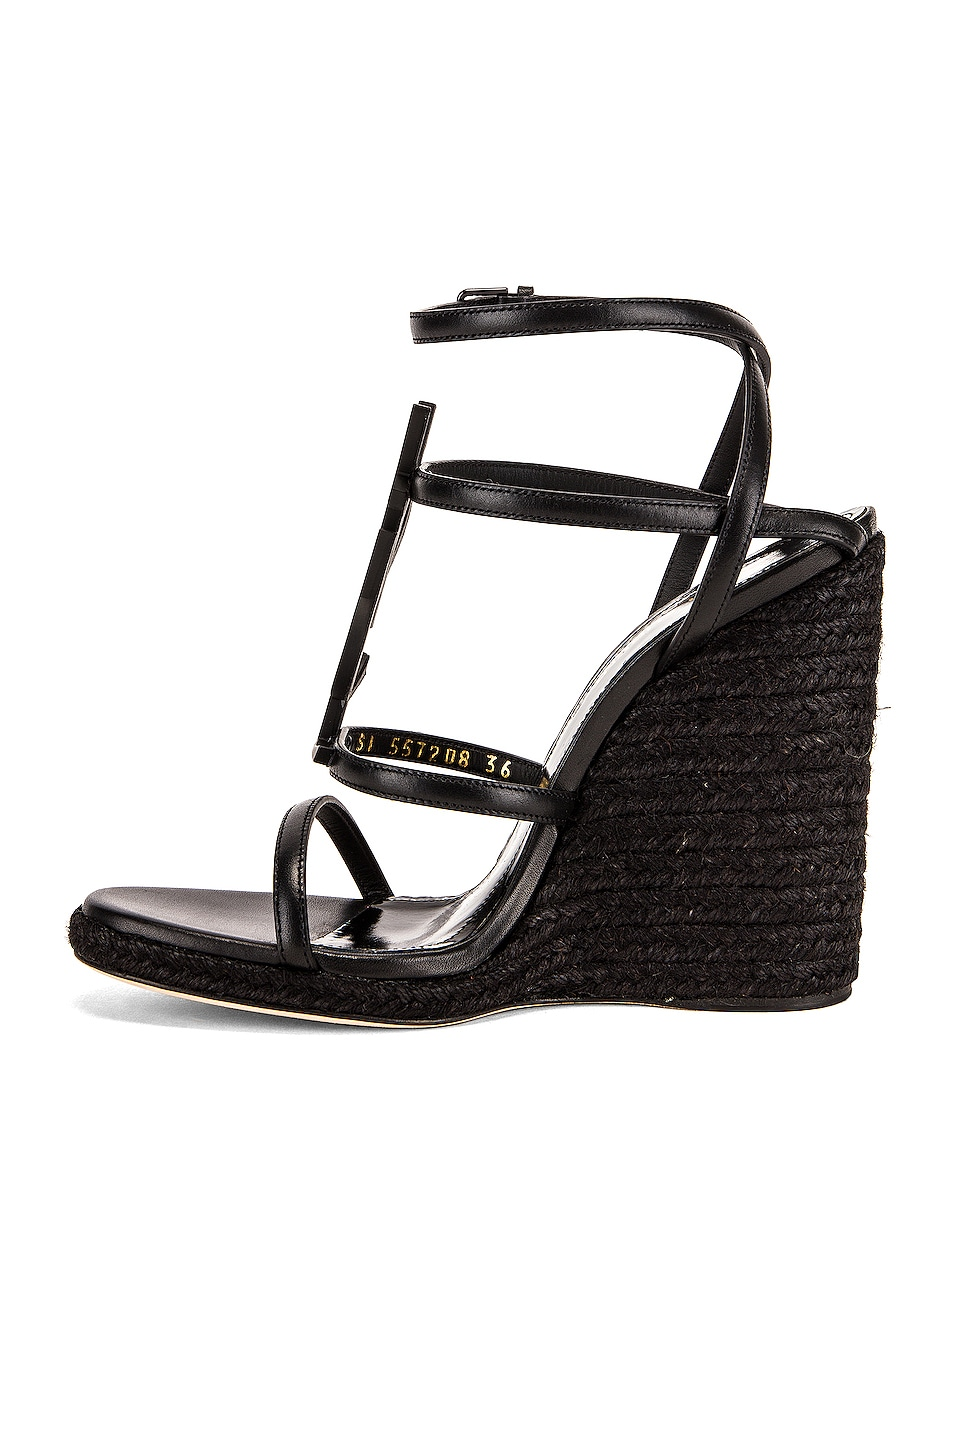 Image 5 of Saint Laurent Cassandra Wedges in Black